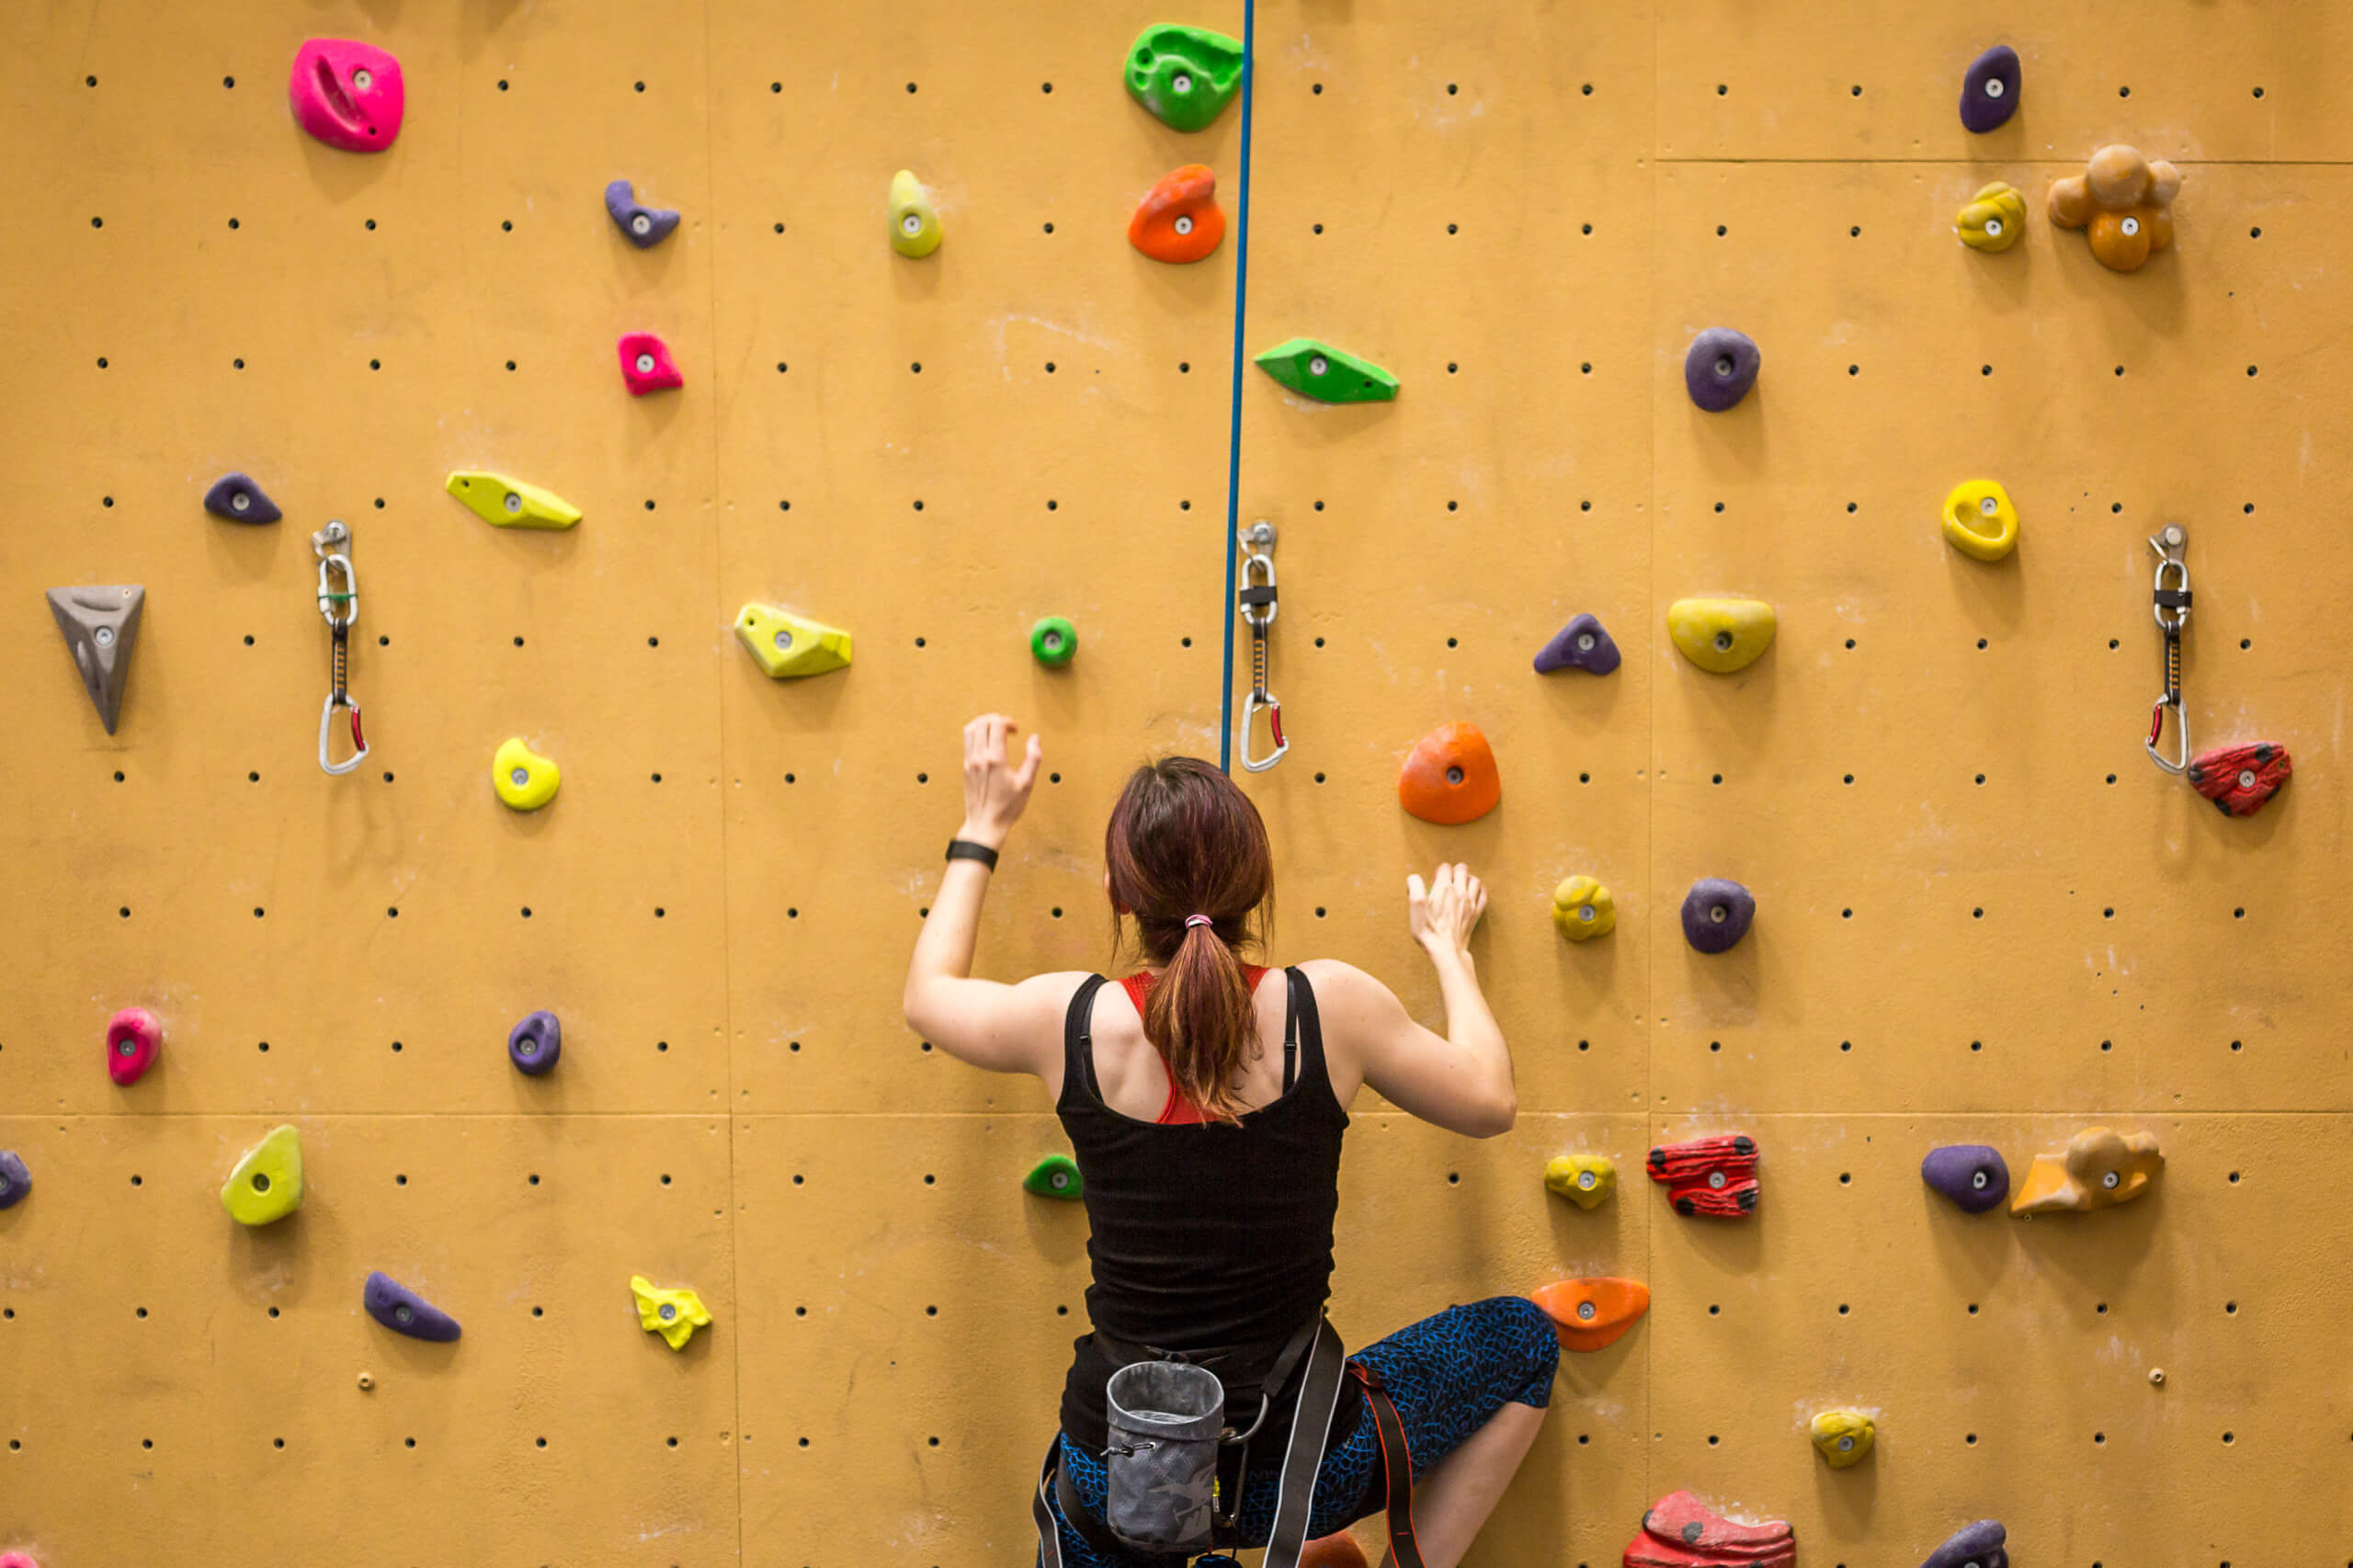 A girl ascending a climbing wall